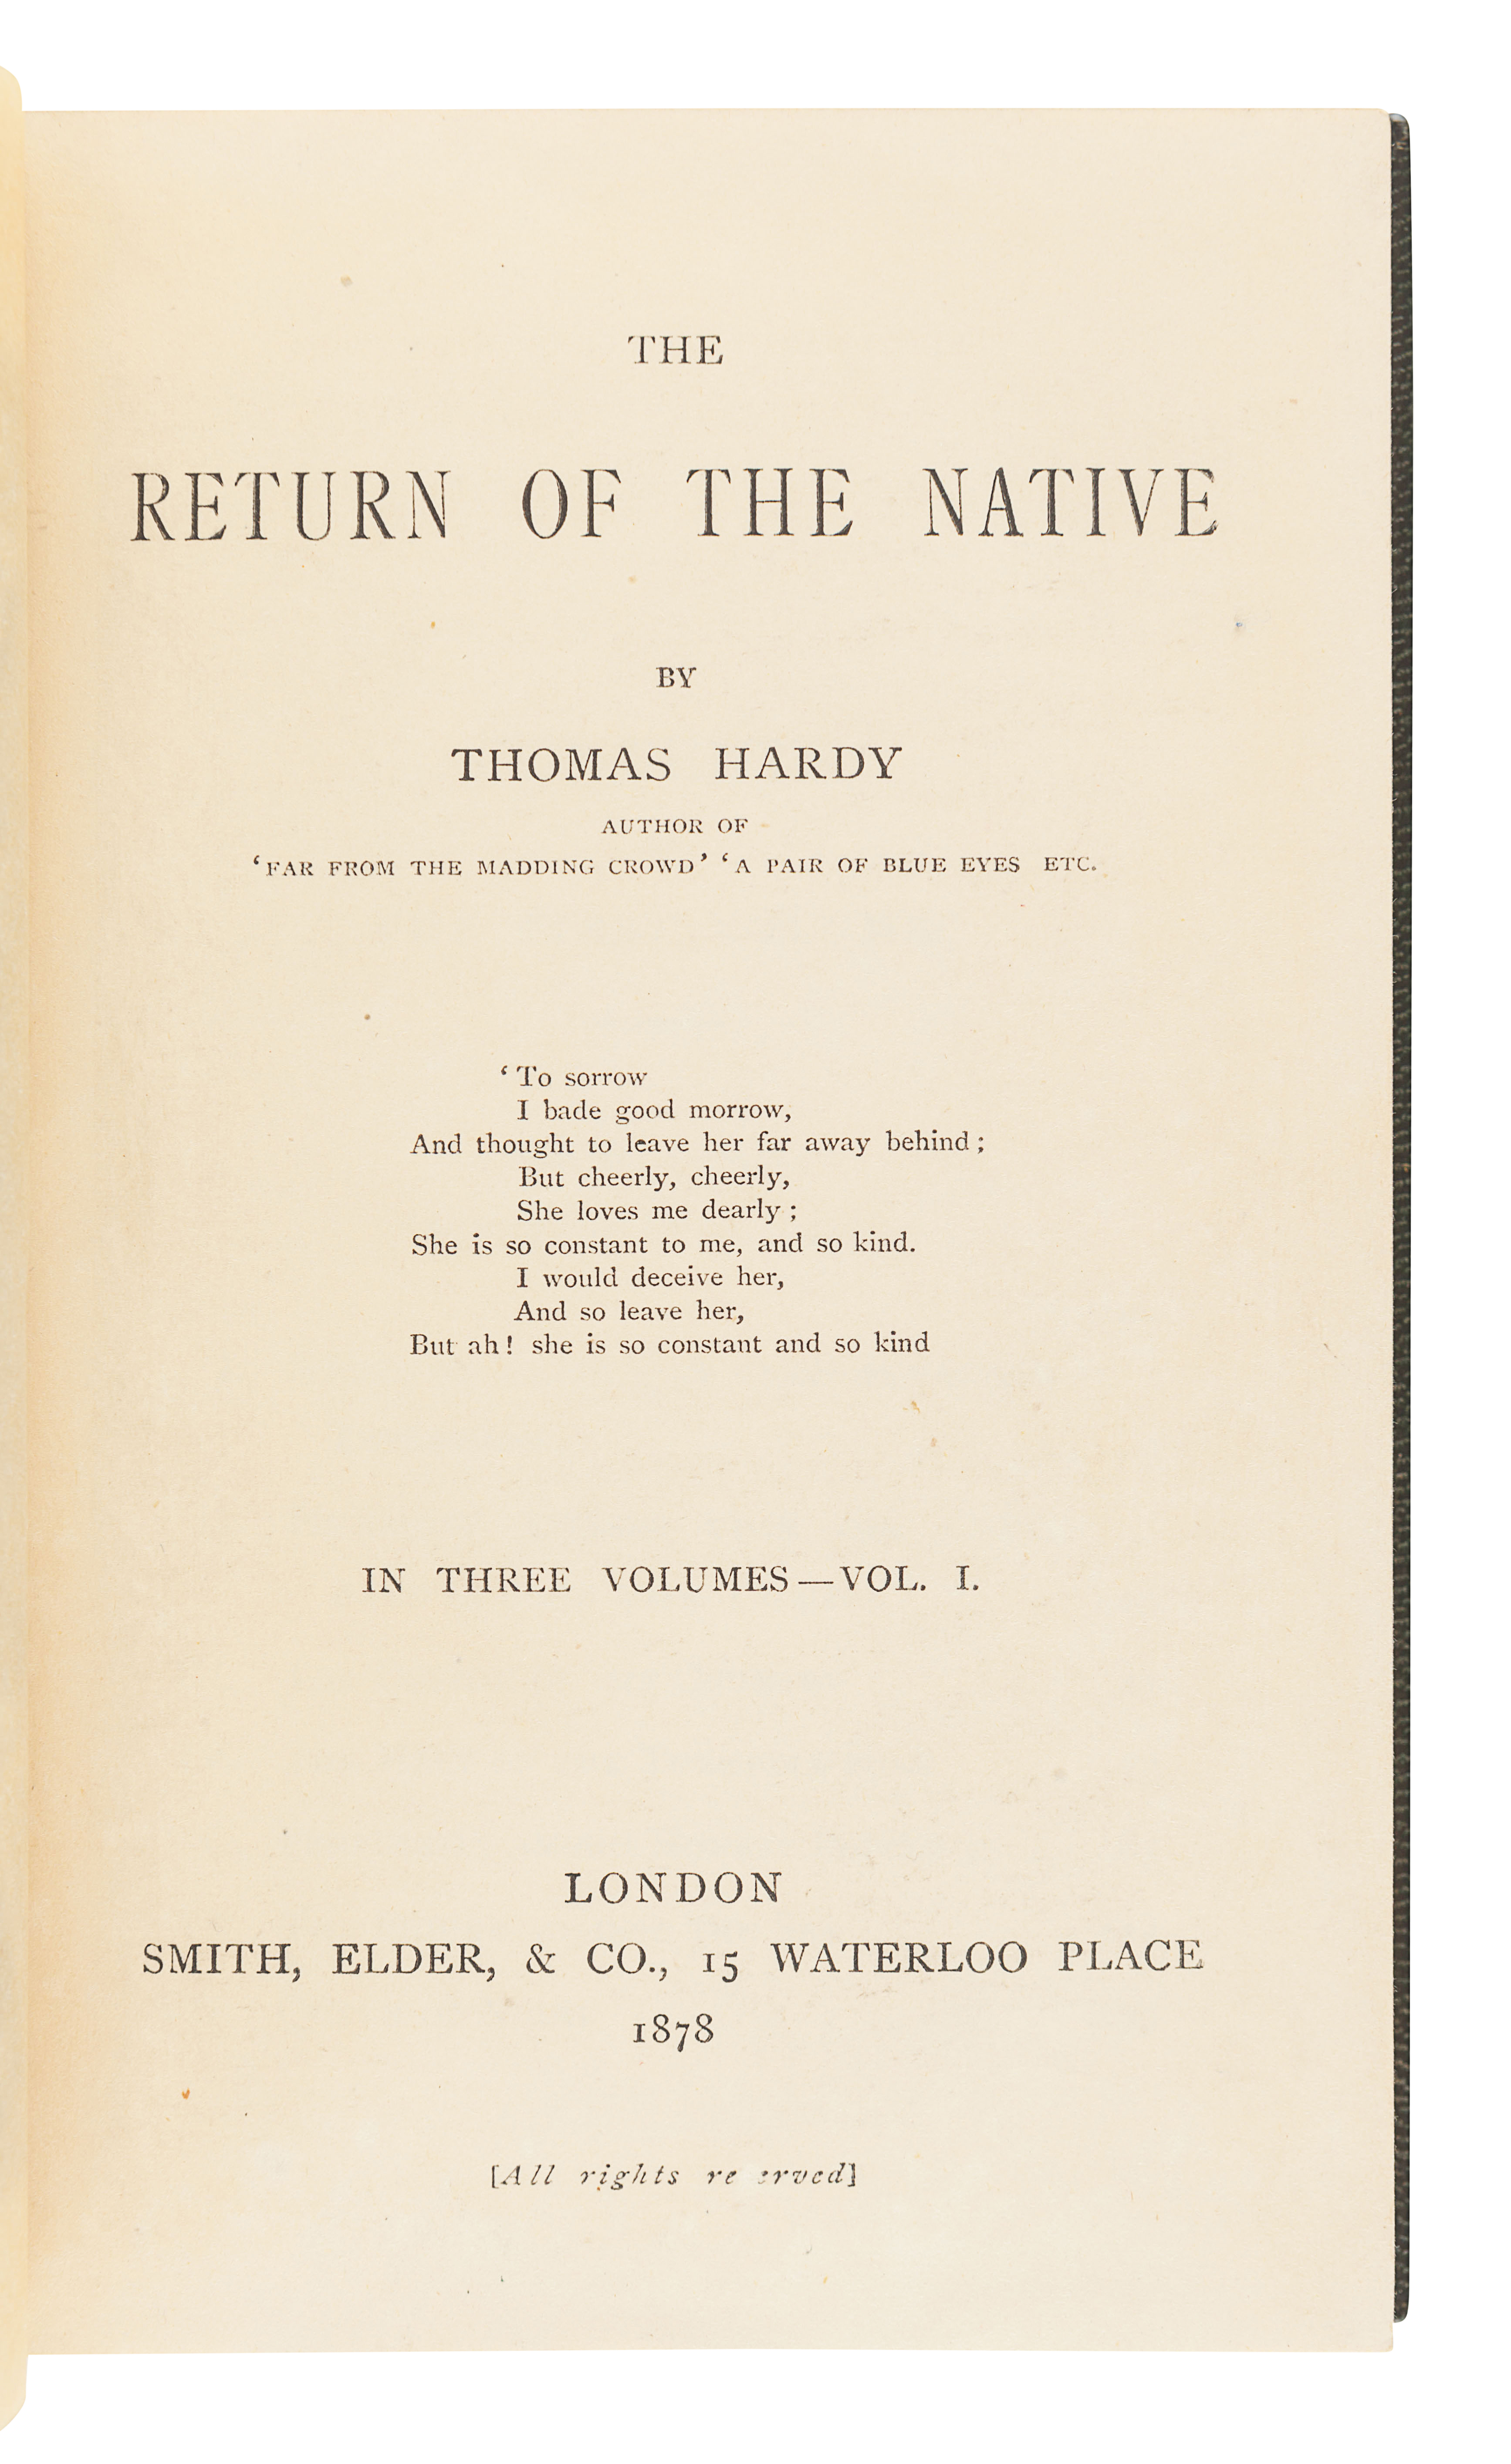 HARDY, Thomas (1840-1928). The Return of the Native. London: Smith, Elder, & Co., 1878. - Image 3 of 3